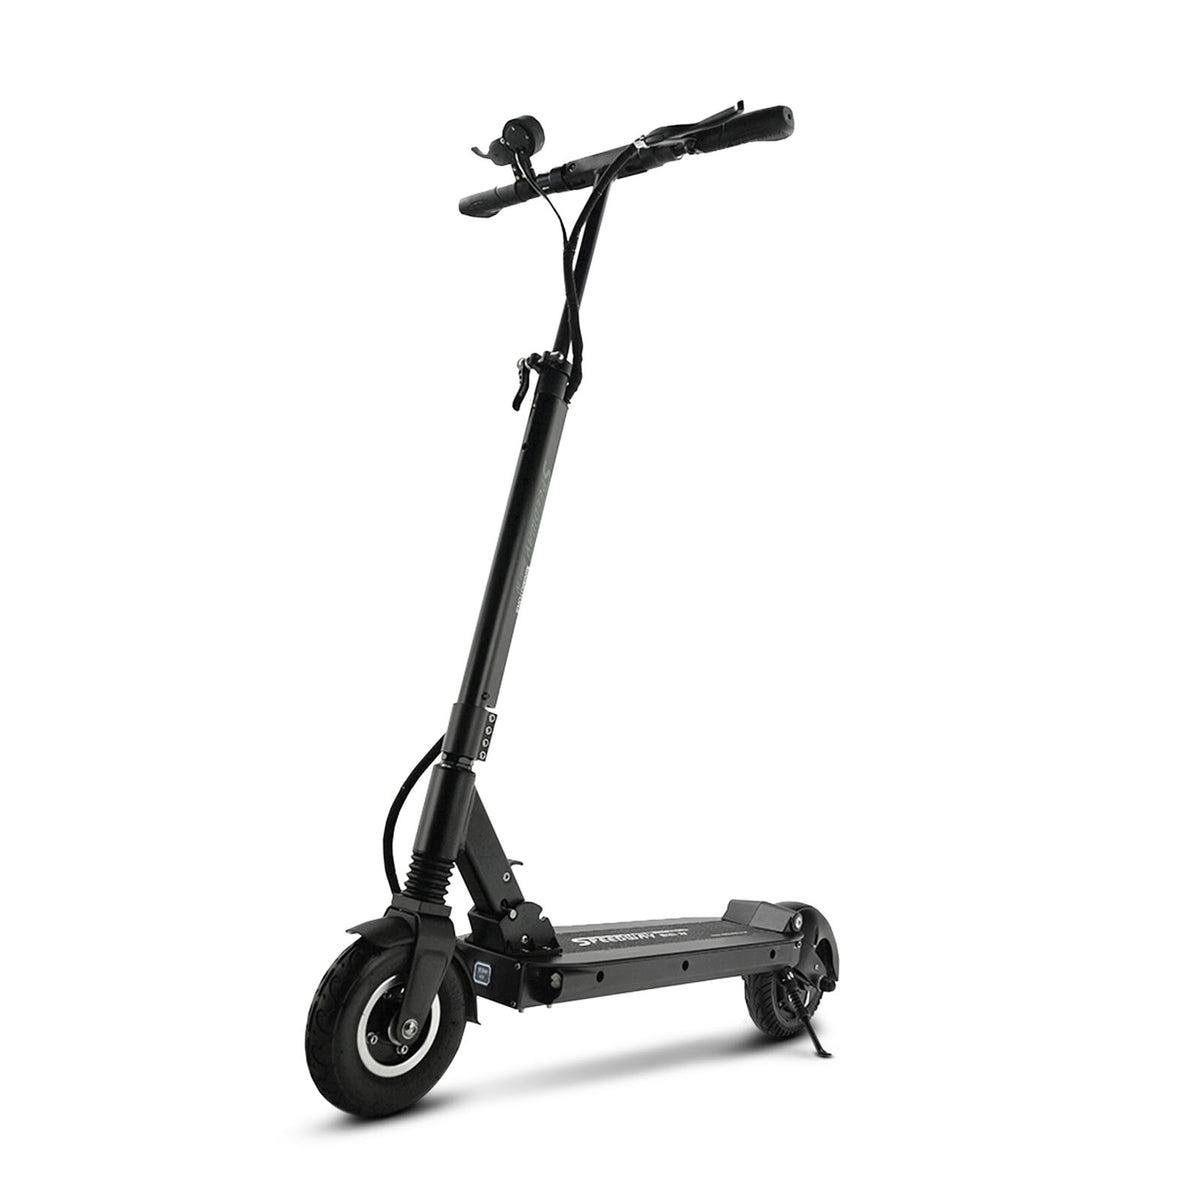 Speedway Mini 4 Pro Electric Scooter Profile